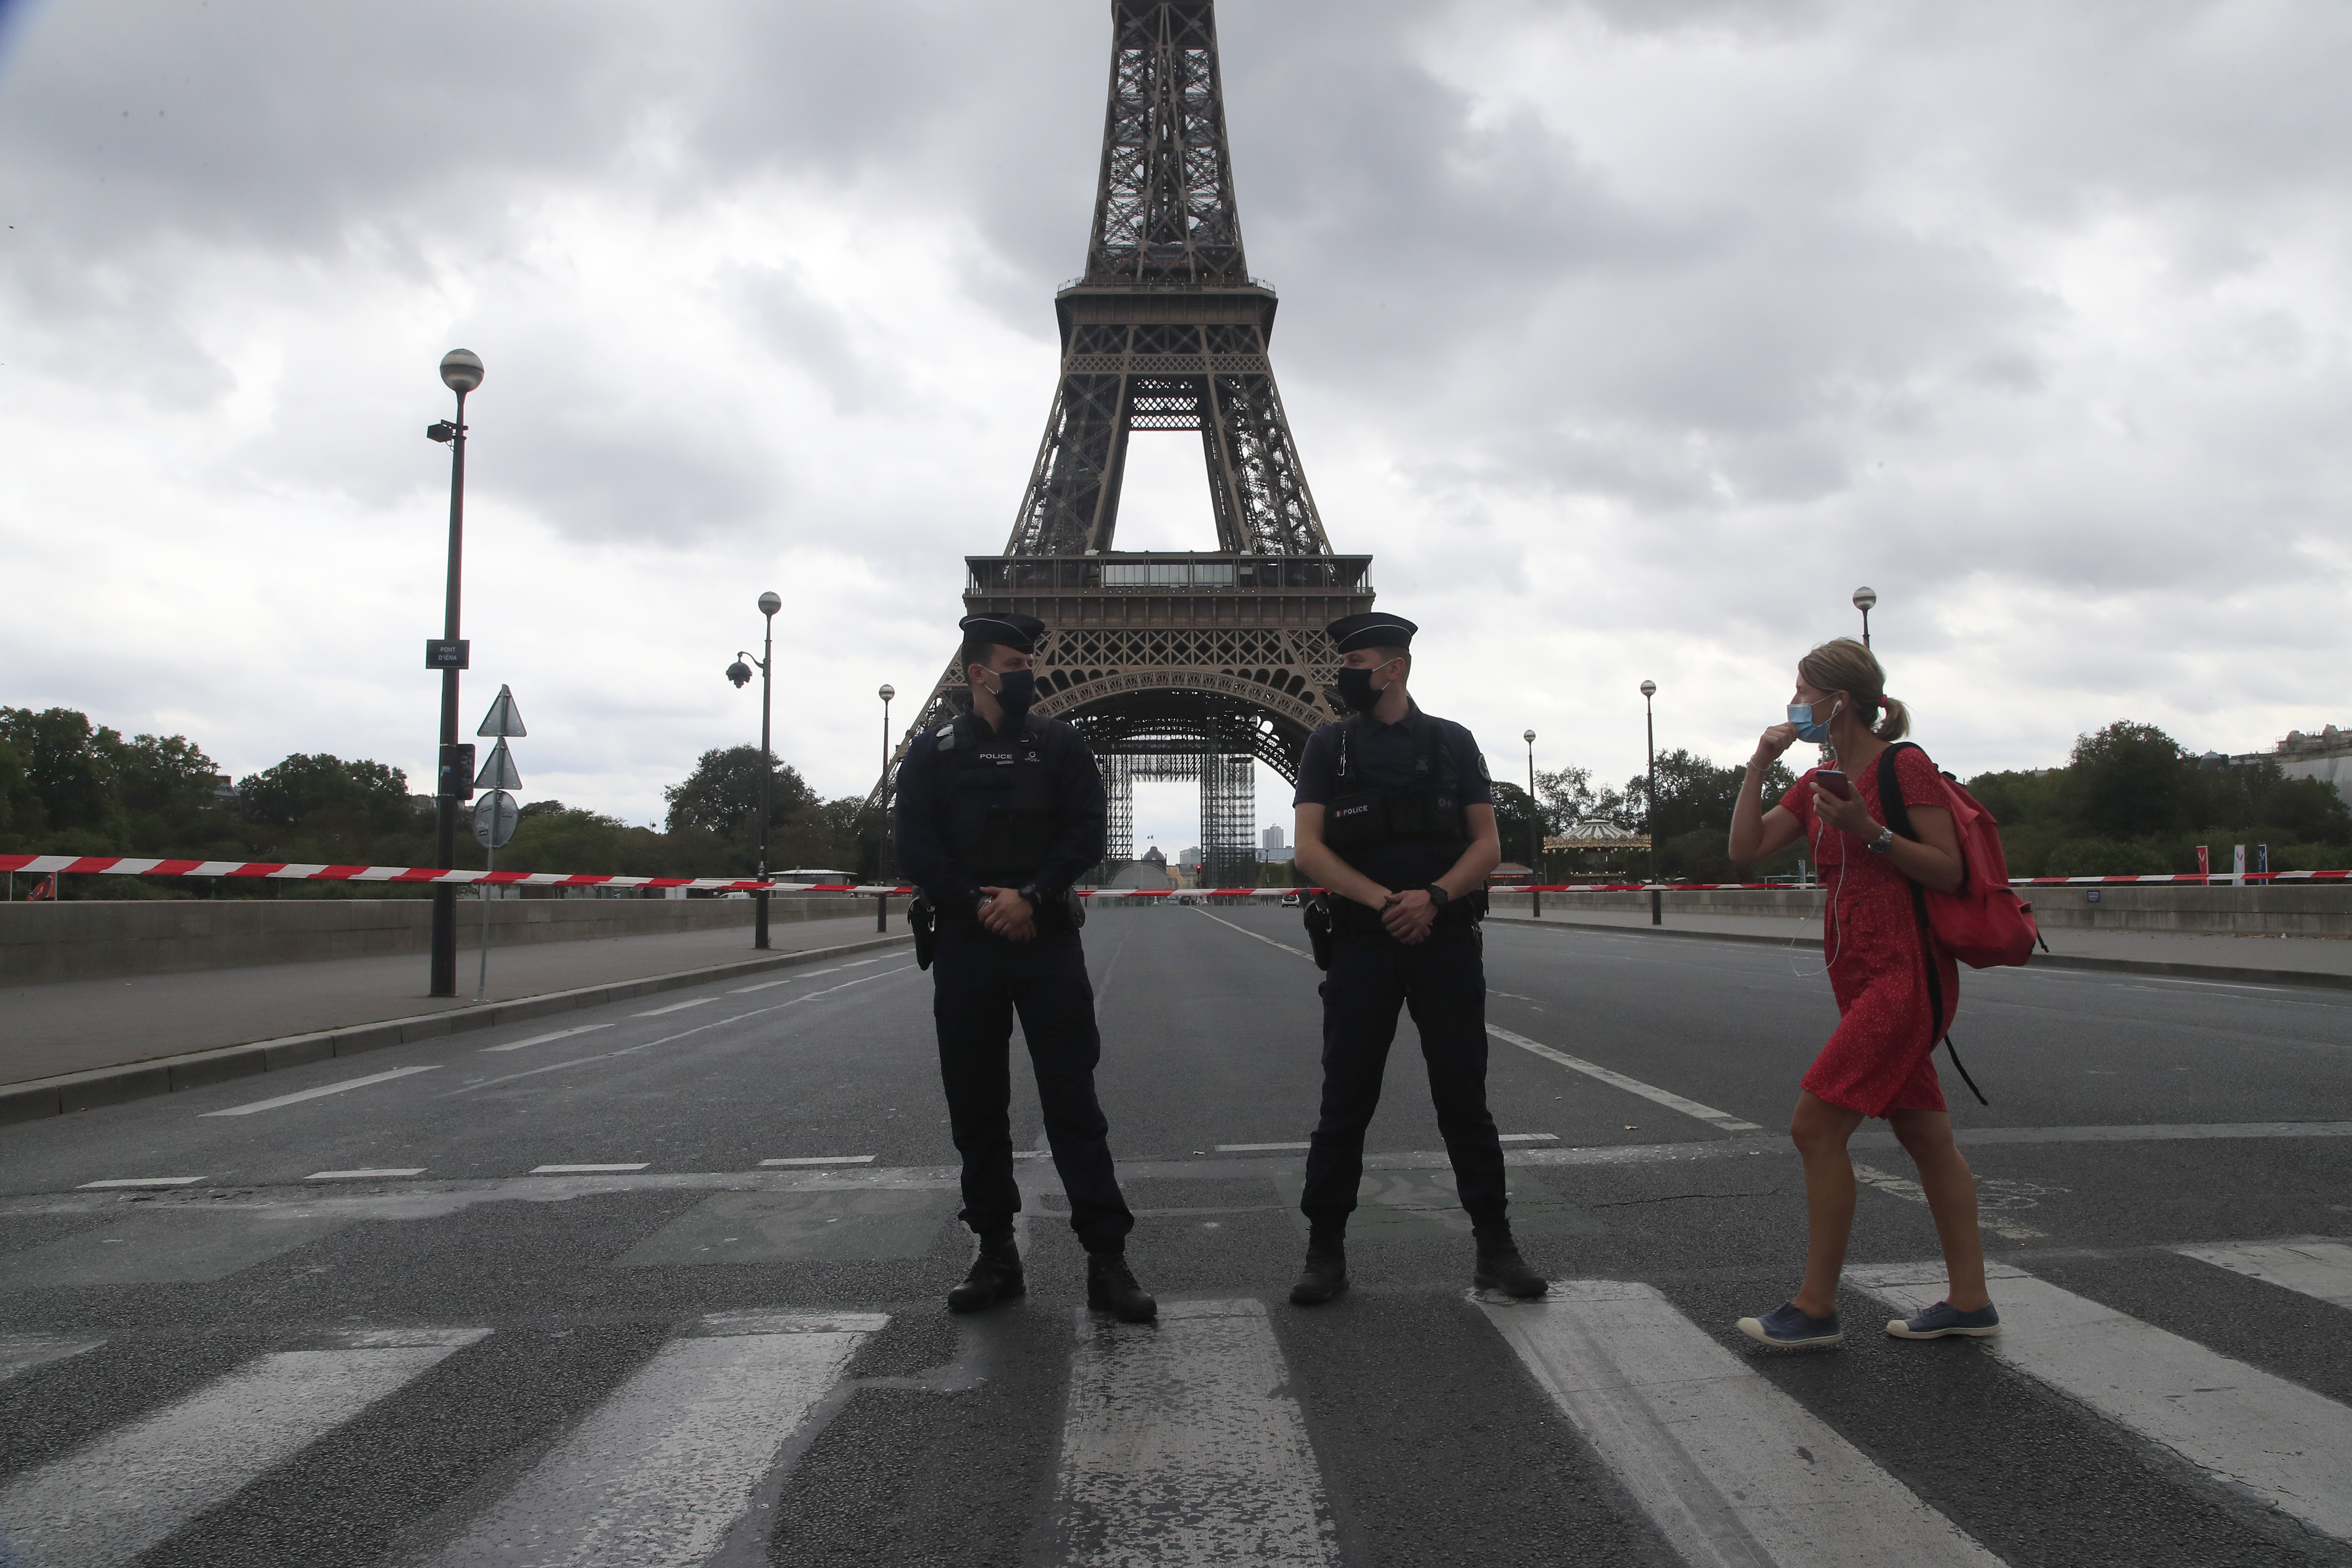 A woman walks past police officers securing the bridge leading to the Eiffel Tower, Wednesday, Sept. 23, 2020 in Paris. Paris police have blockaded the area around the Eiffel Tower after a phone-in bomb threat.